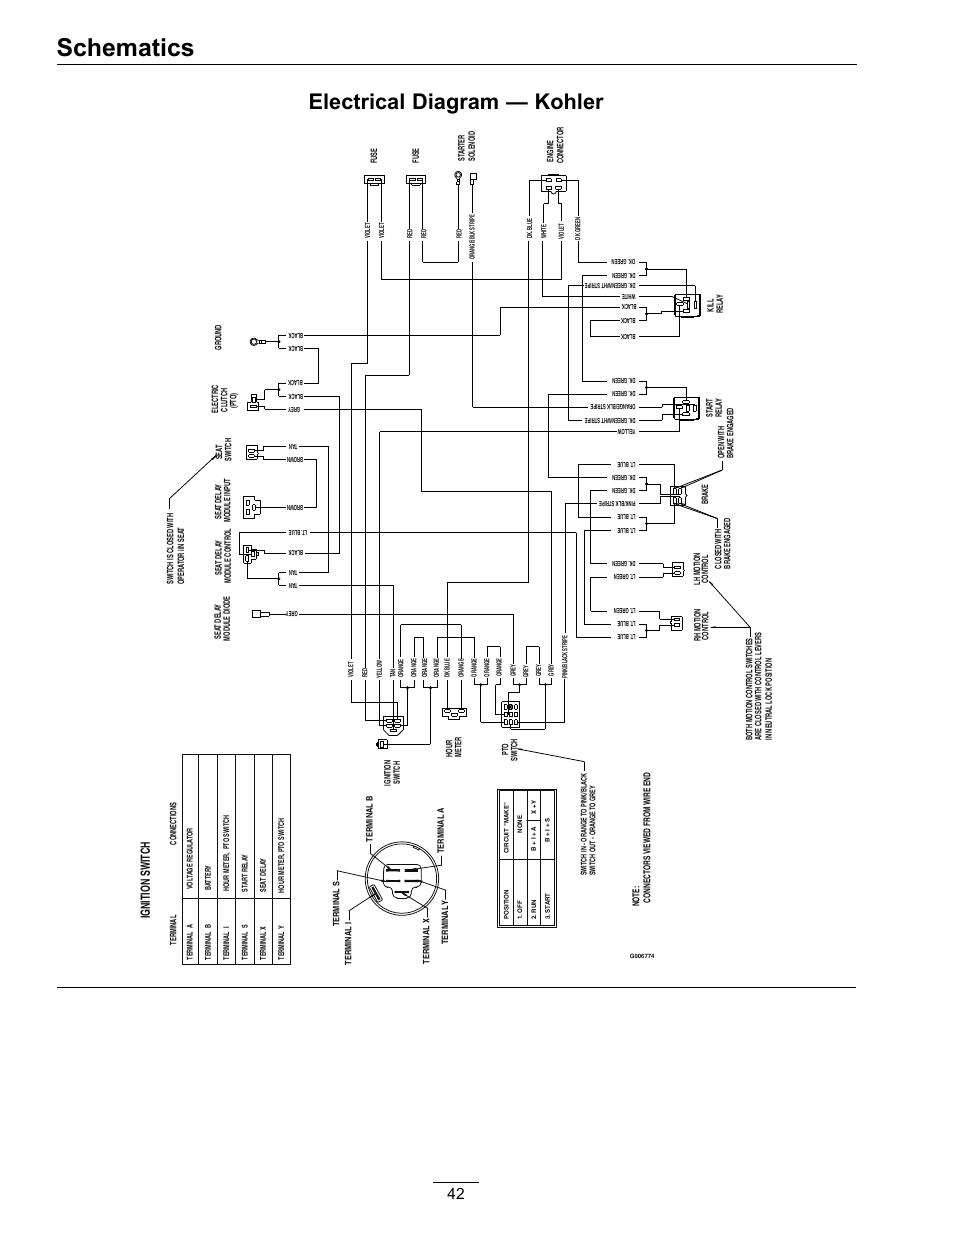 Schematics, Electrical diagram — kohler, Ignition switch